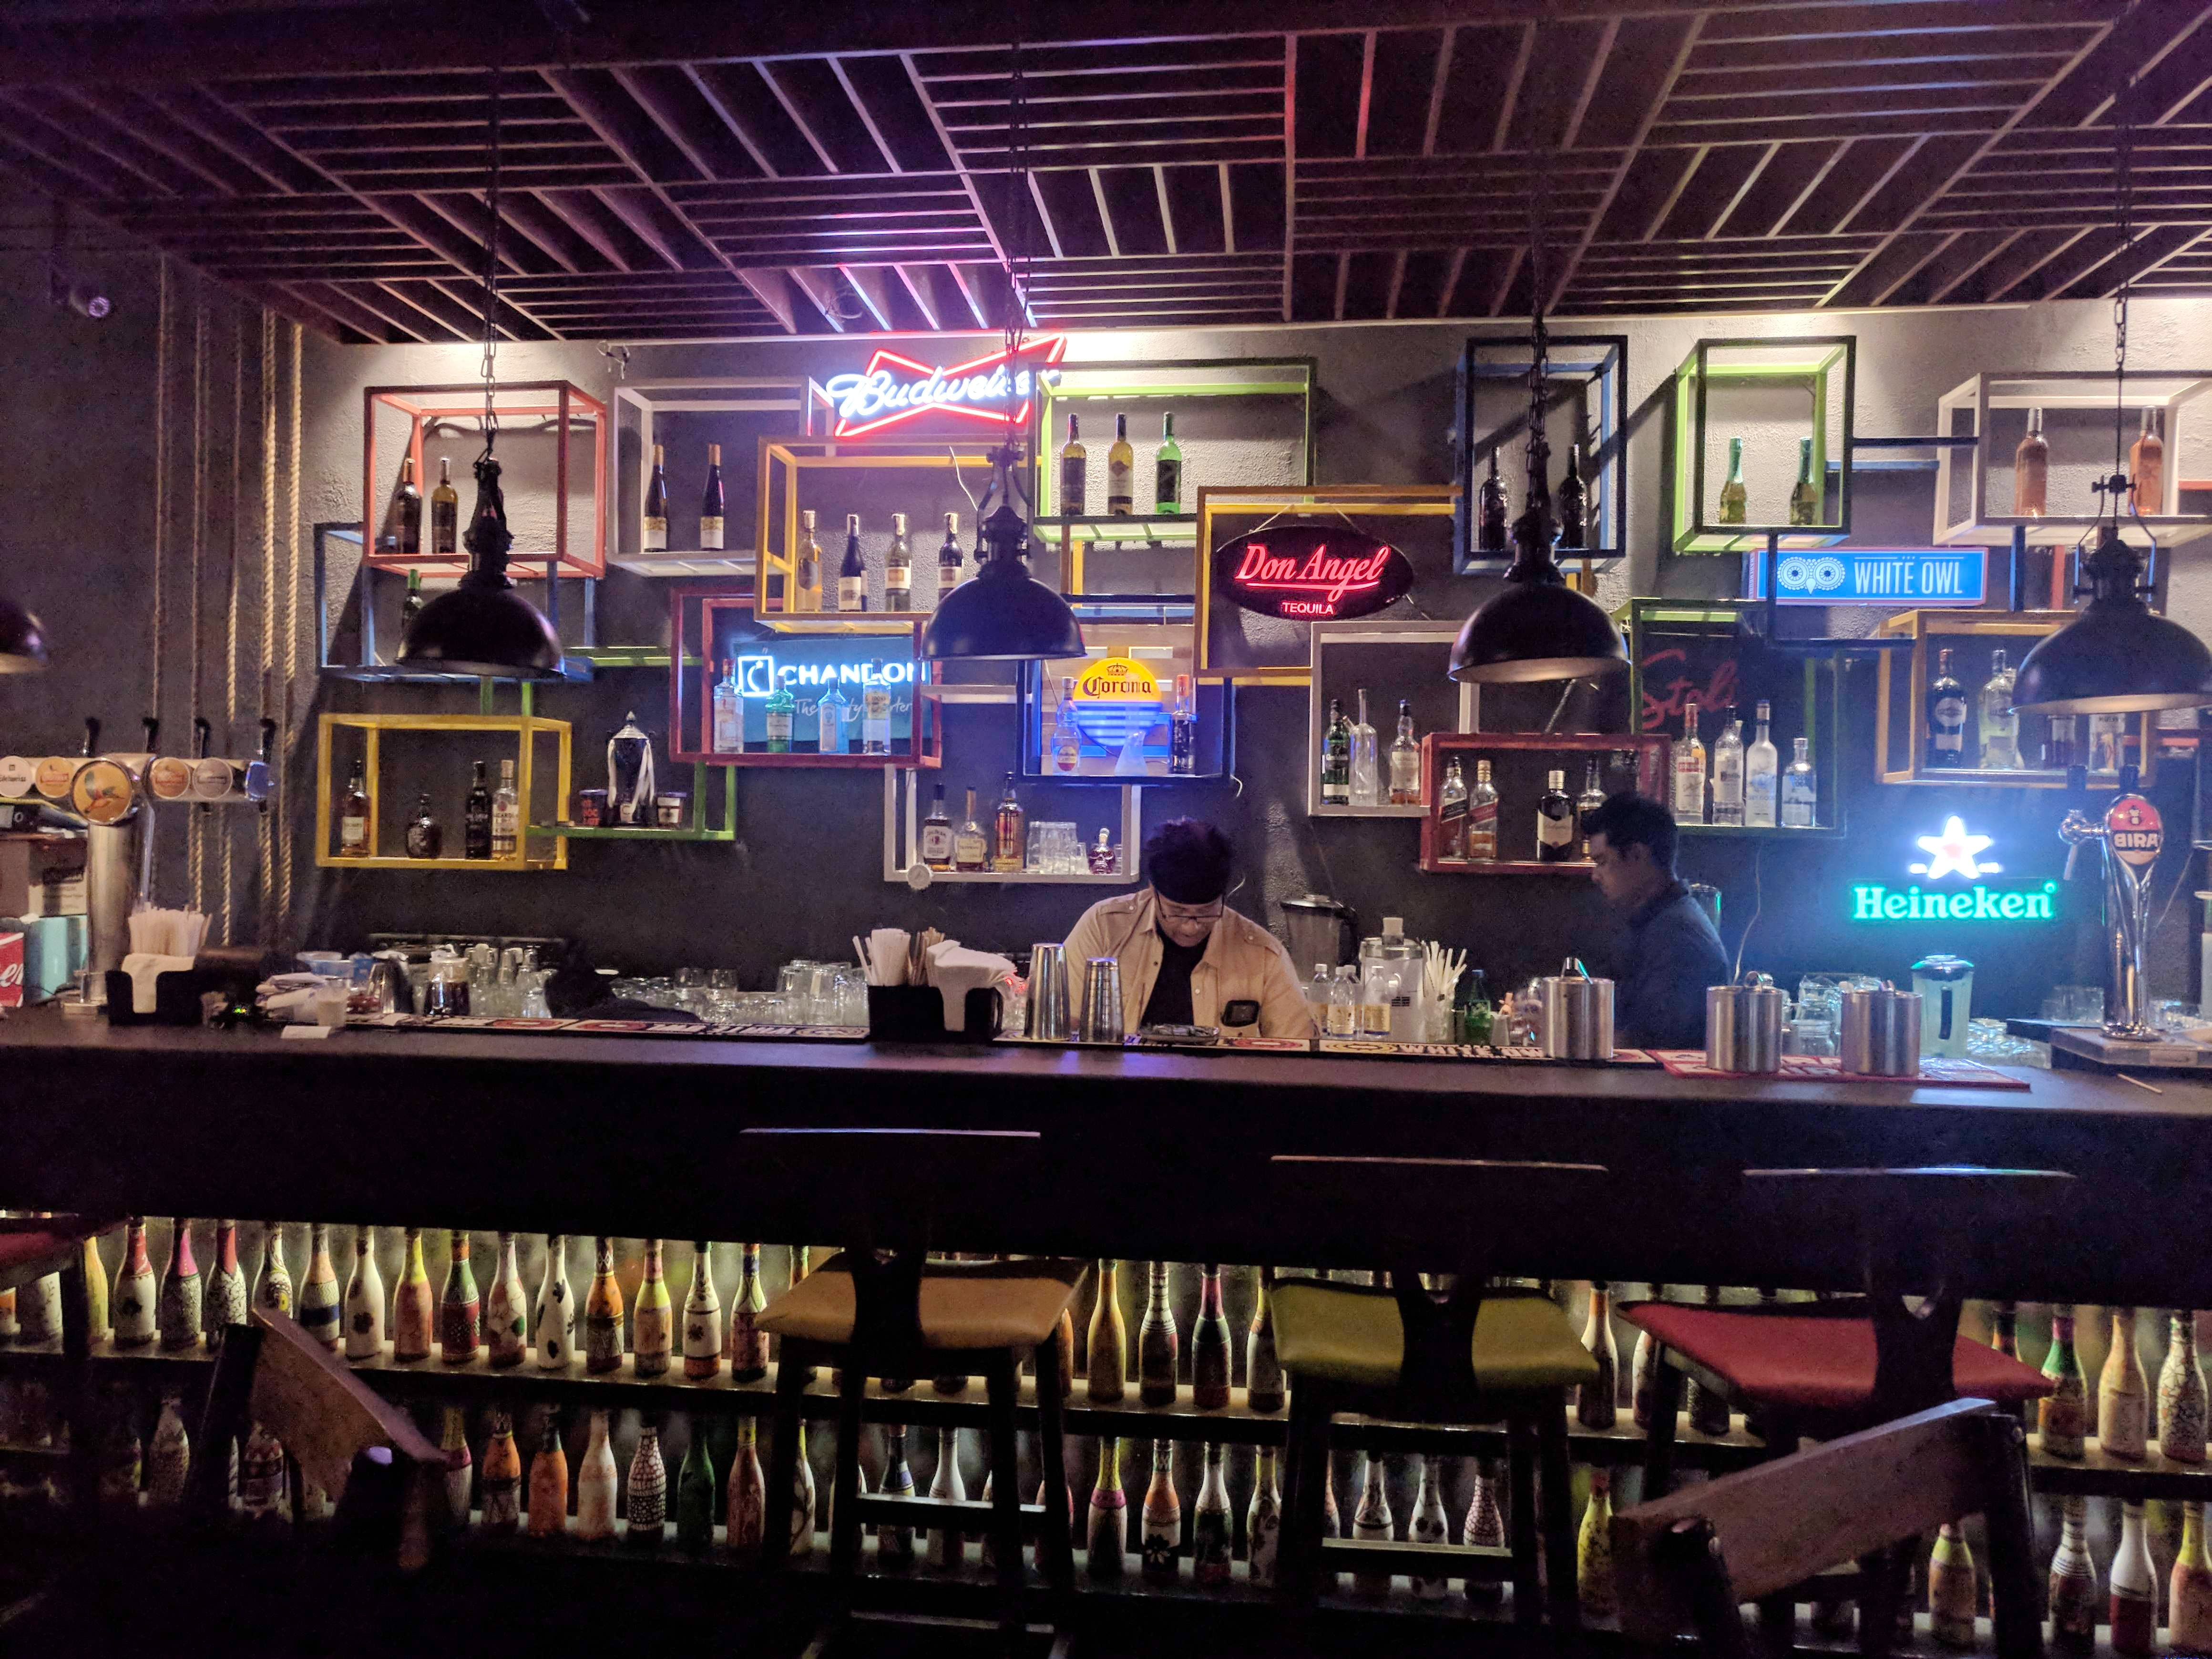 Bar,Pub,Drinking establishment,Tavern,Building,Night,Restaurant,Barware,City